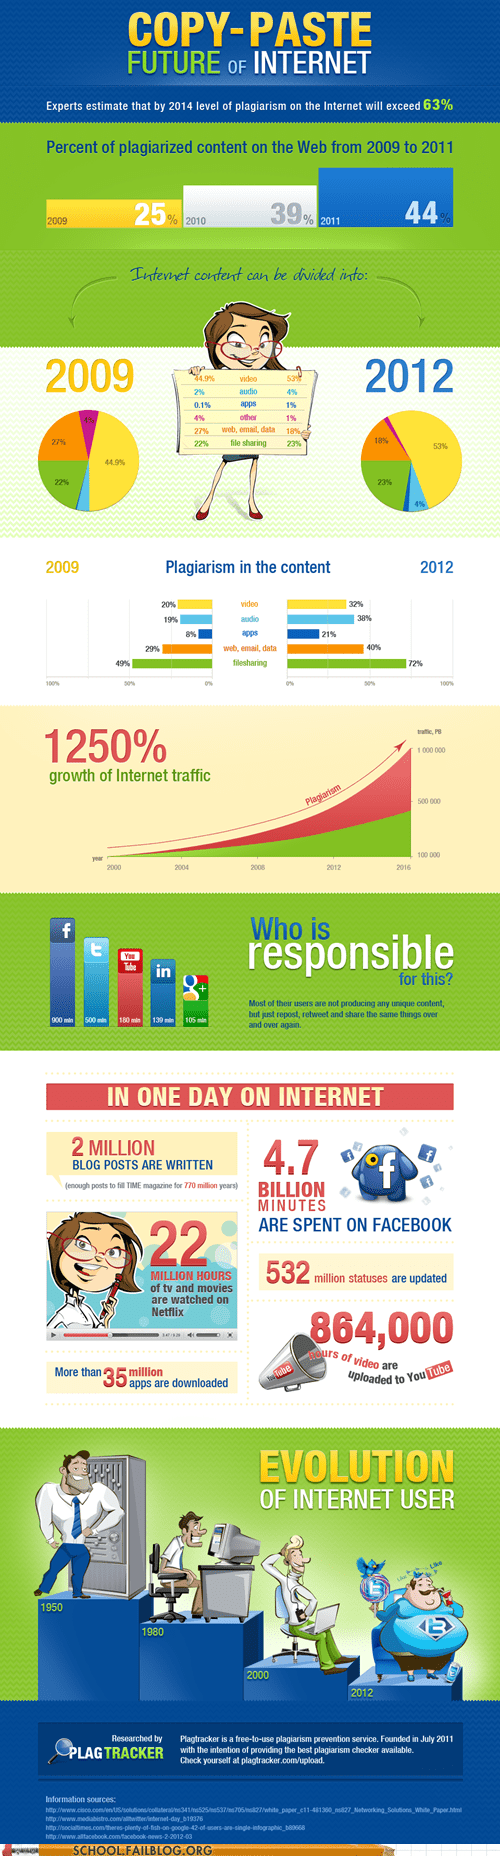 class is in session copy paste future of the internet infographic plagiarism 110 plagtracker - 6402285056